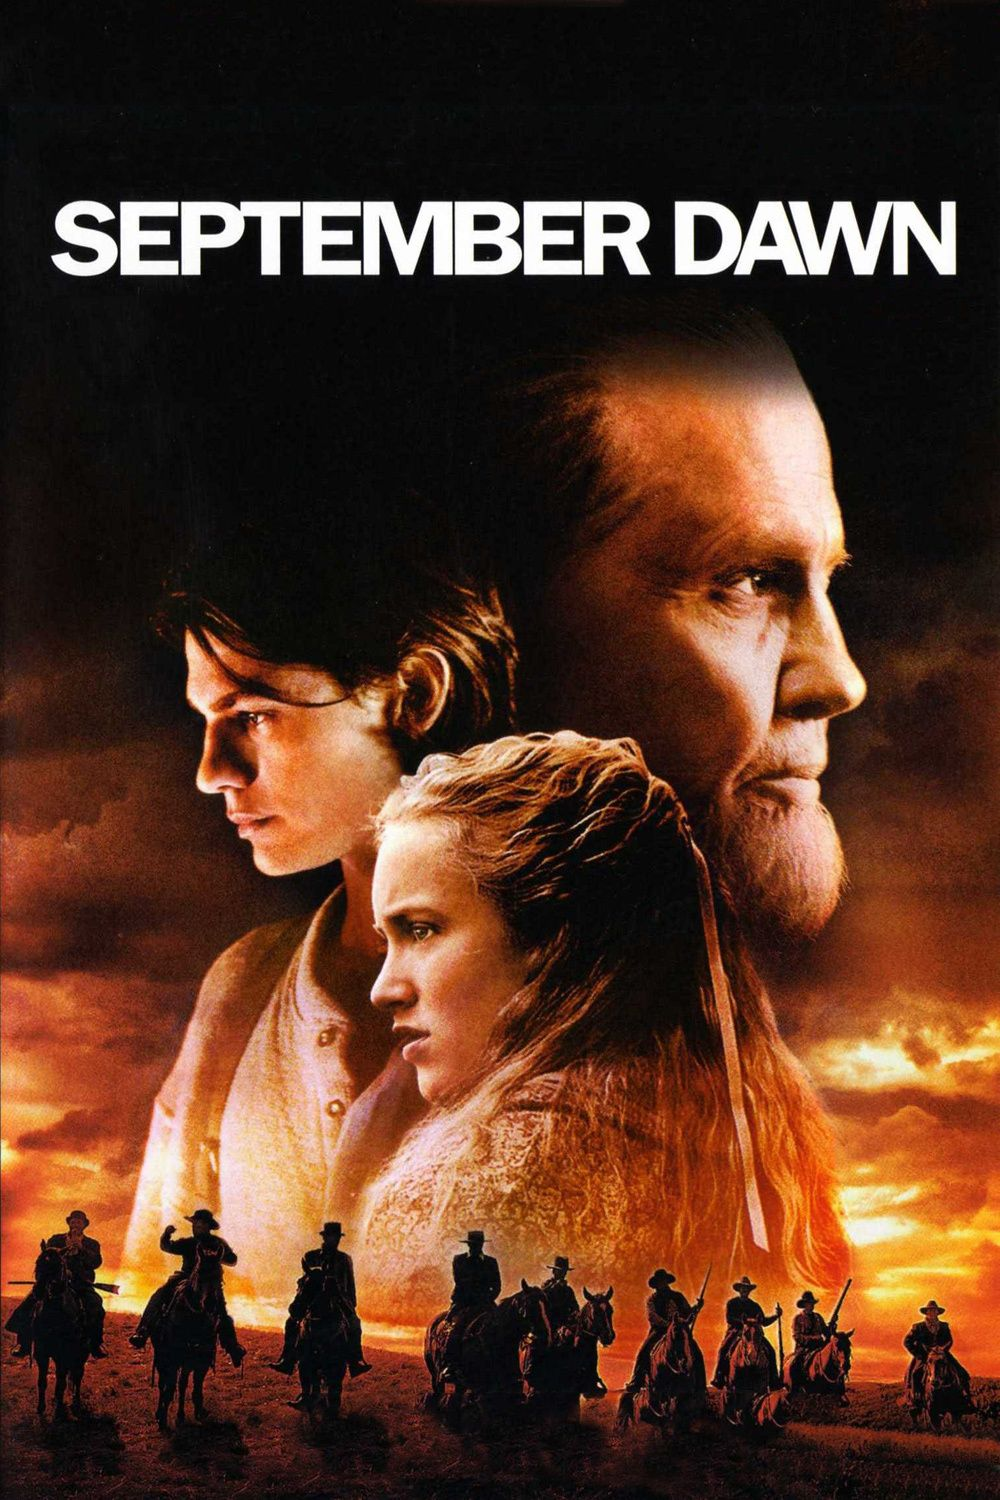 September Dawn (2007) is a 2007 CanadianAmerican Western